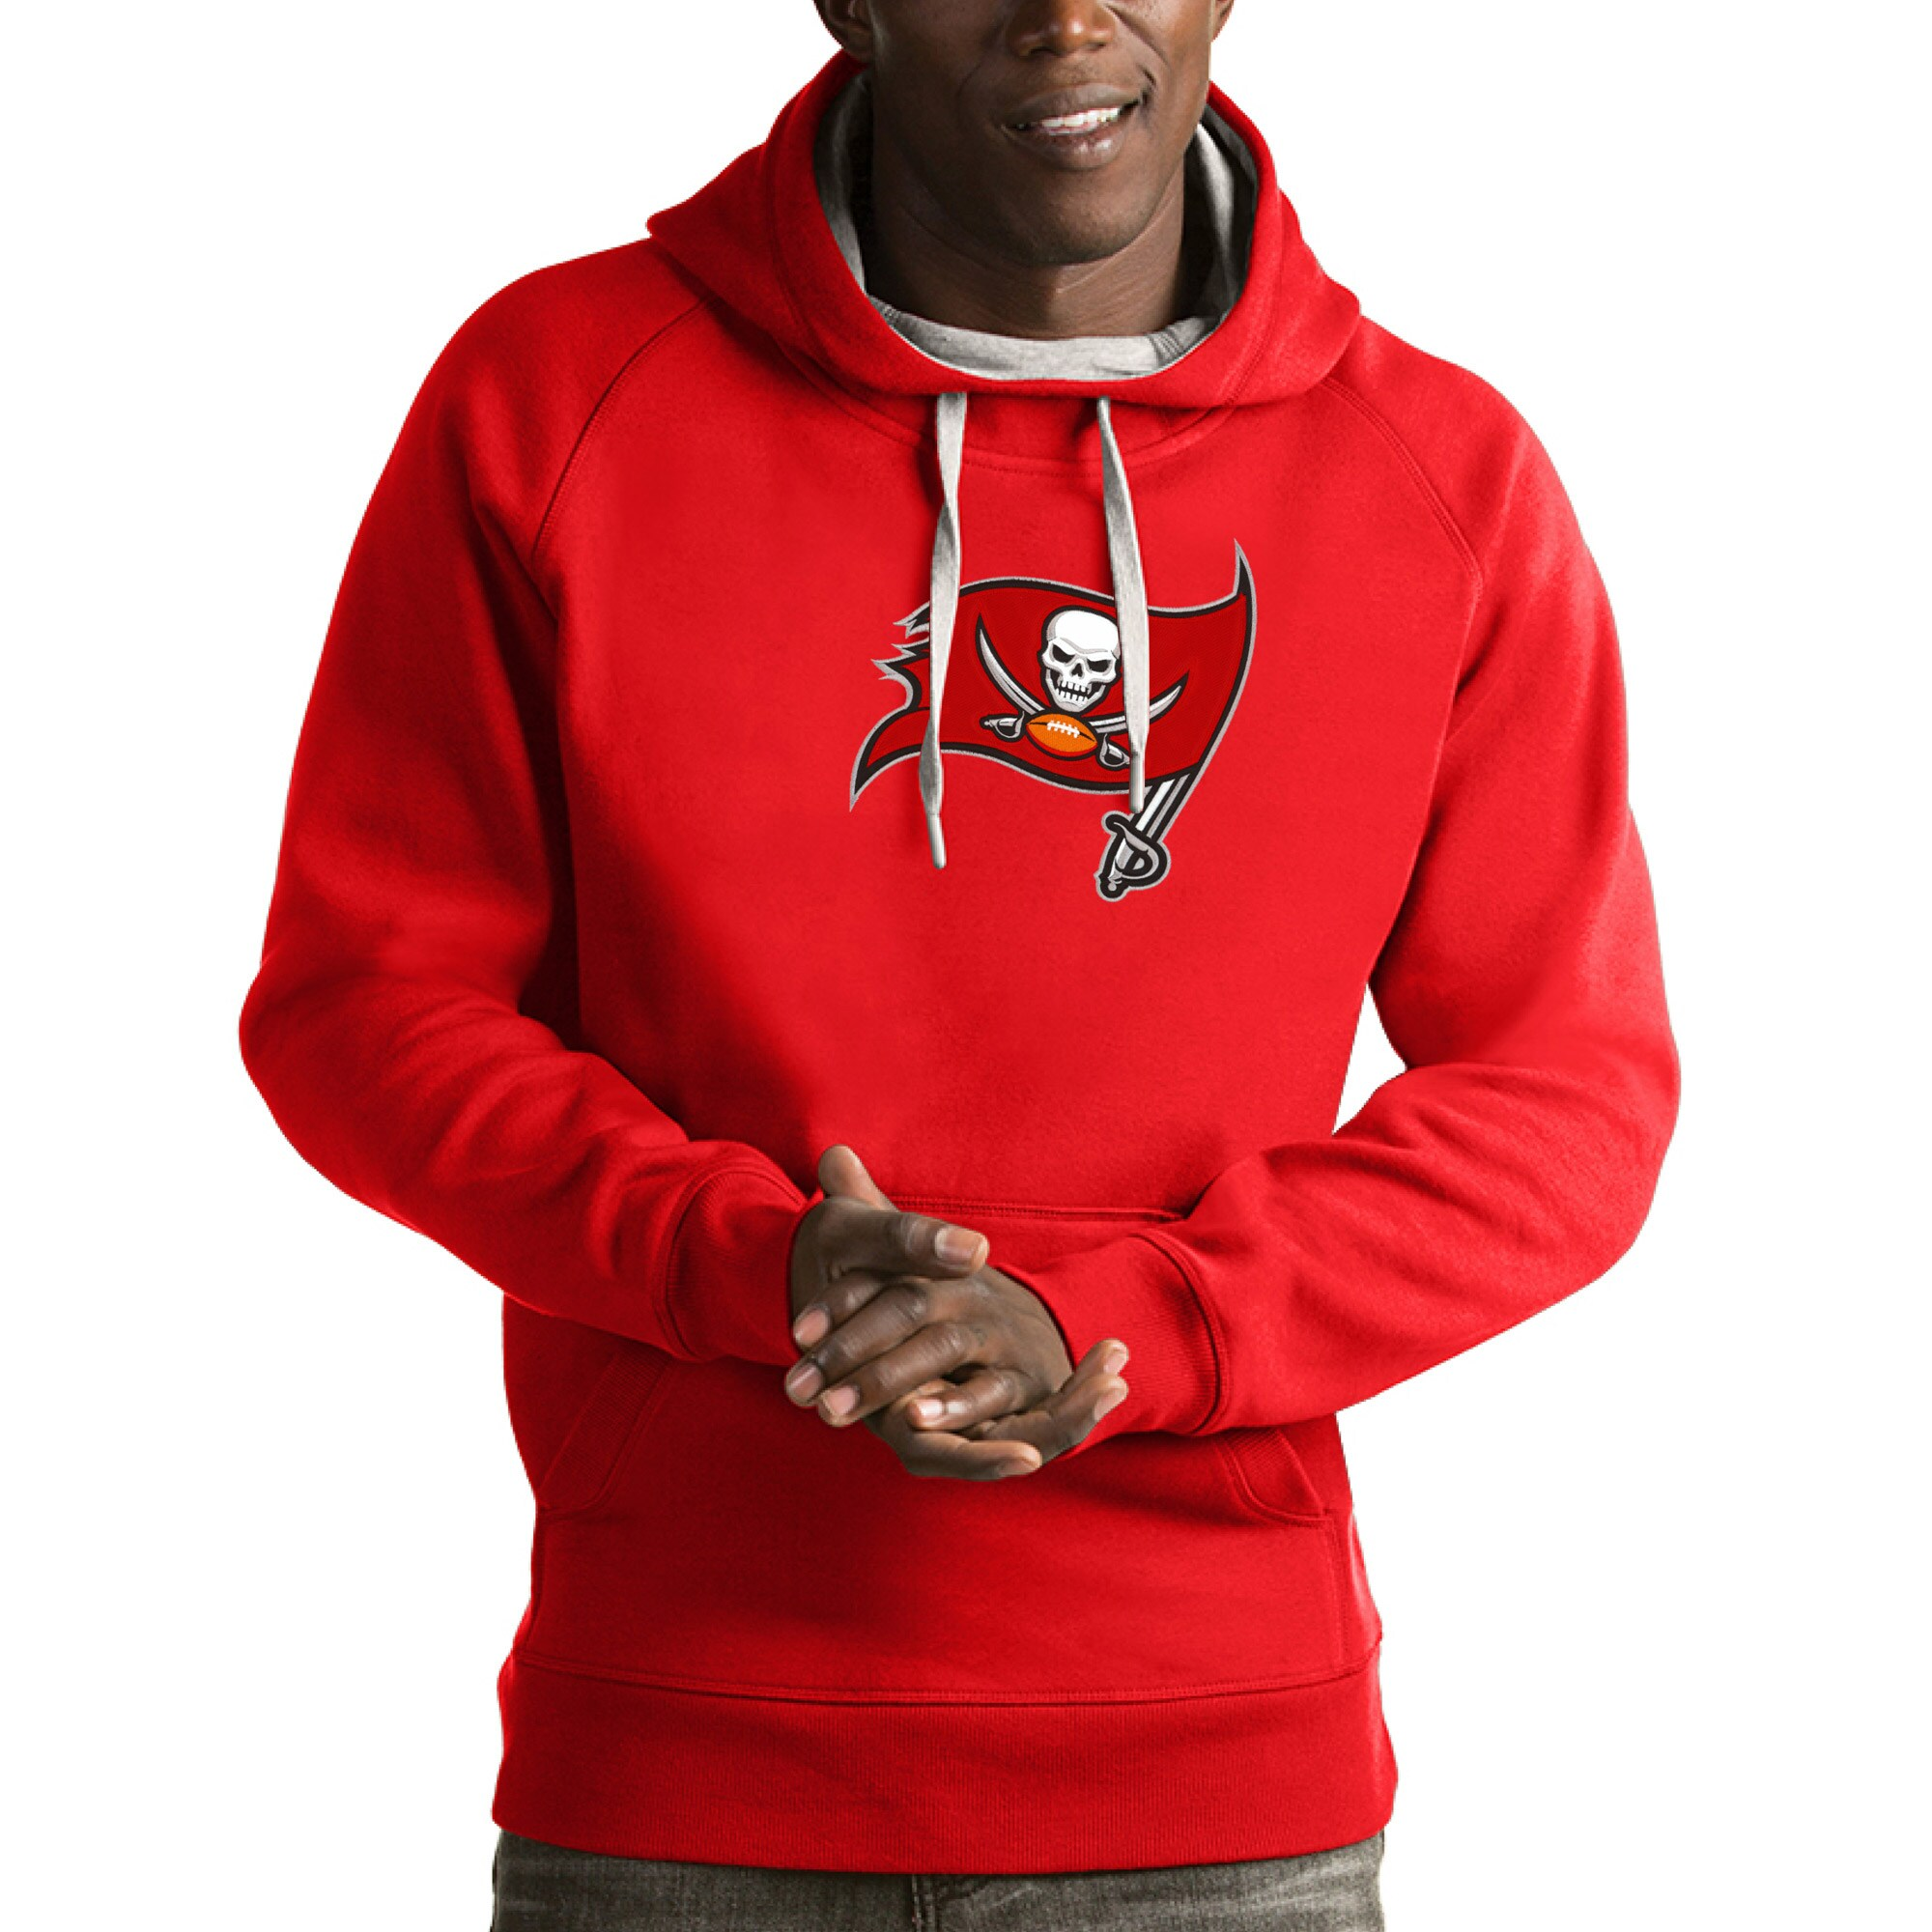 Tampa Bay Buccaneers Antigua Victory Pullover Hoodie - Red